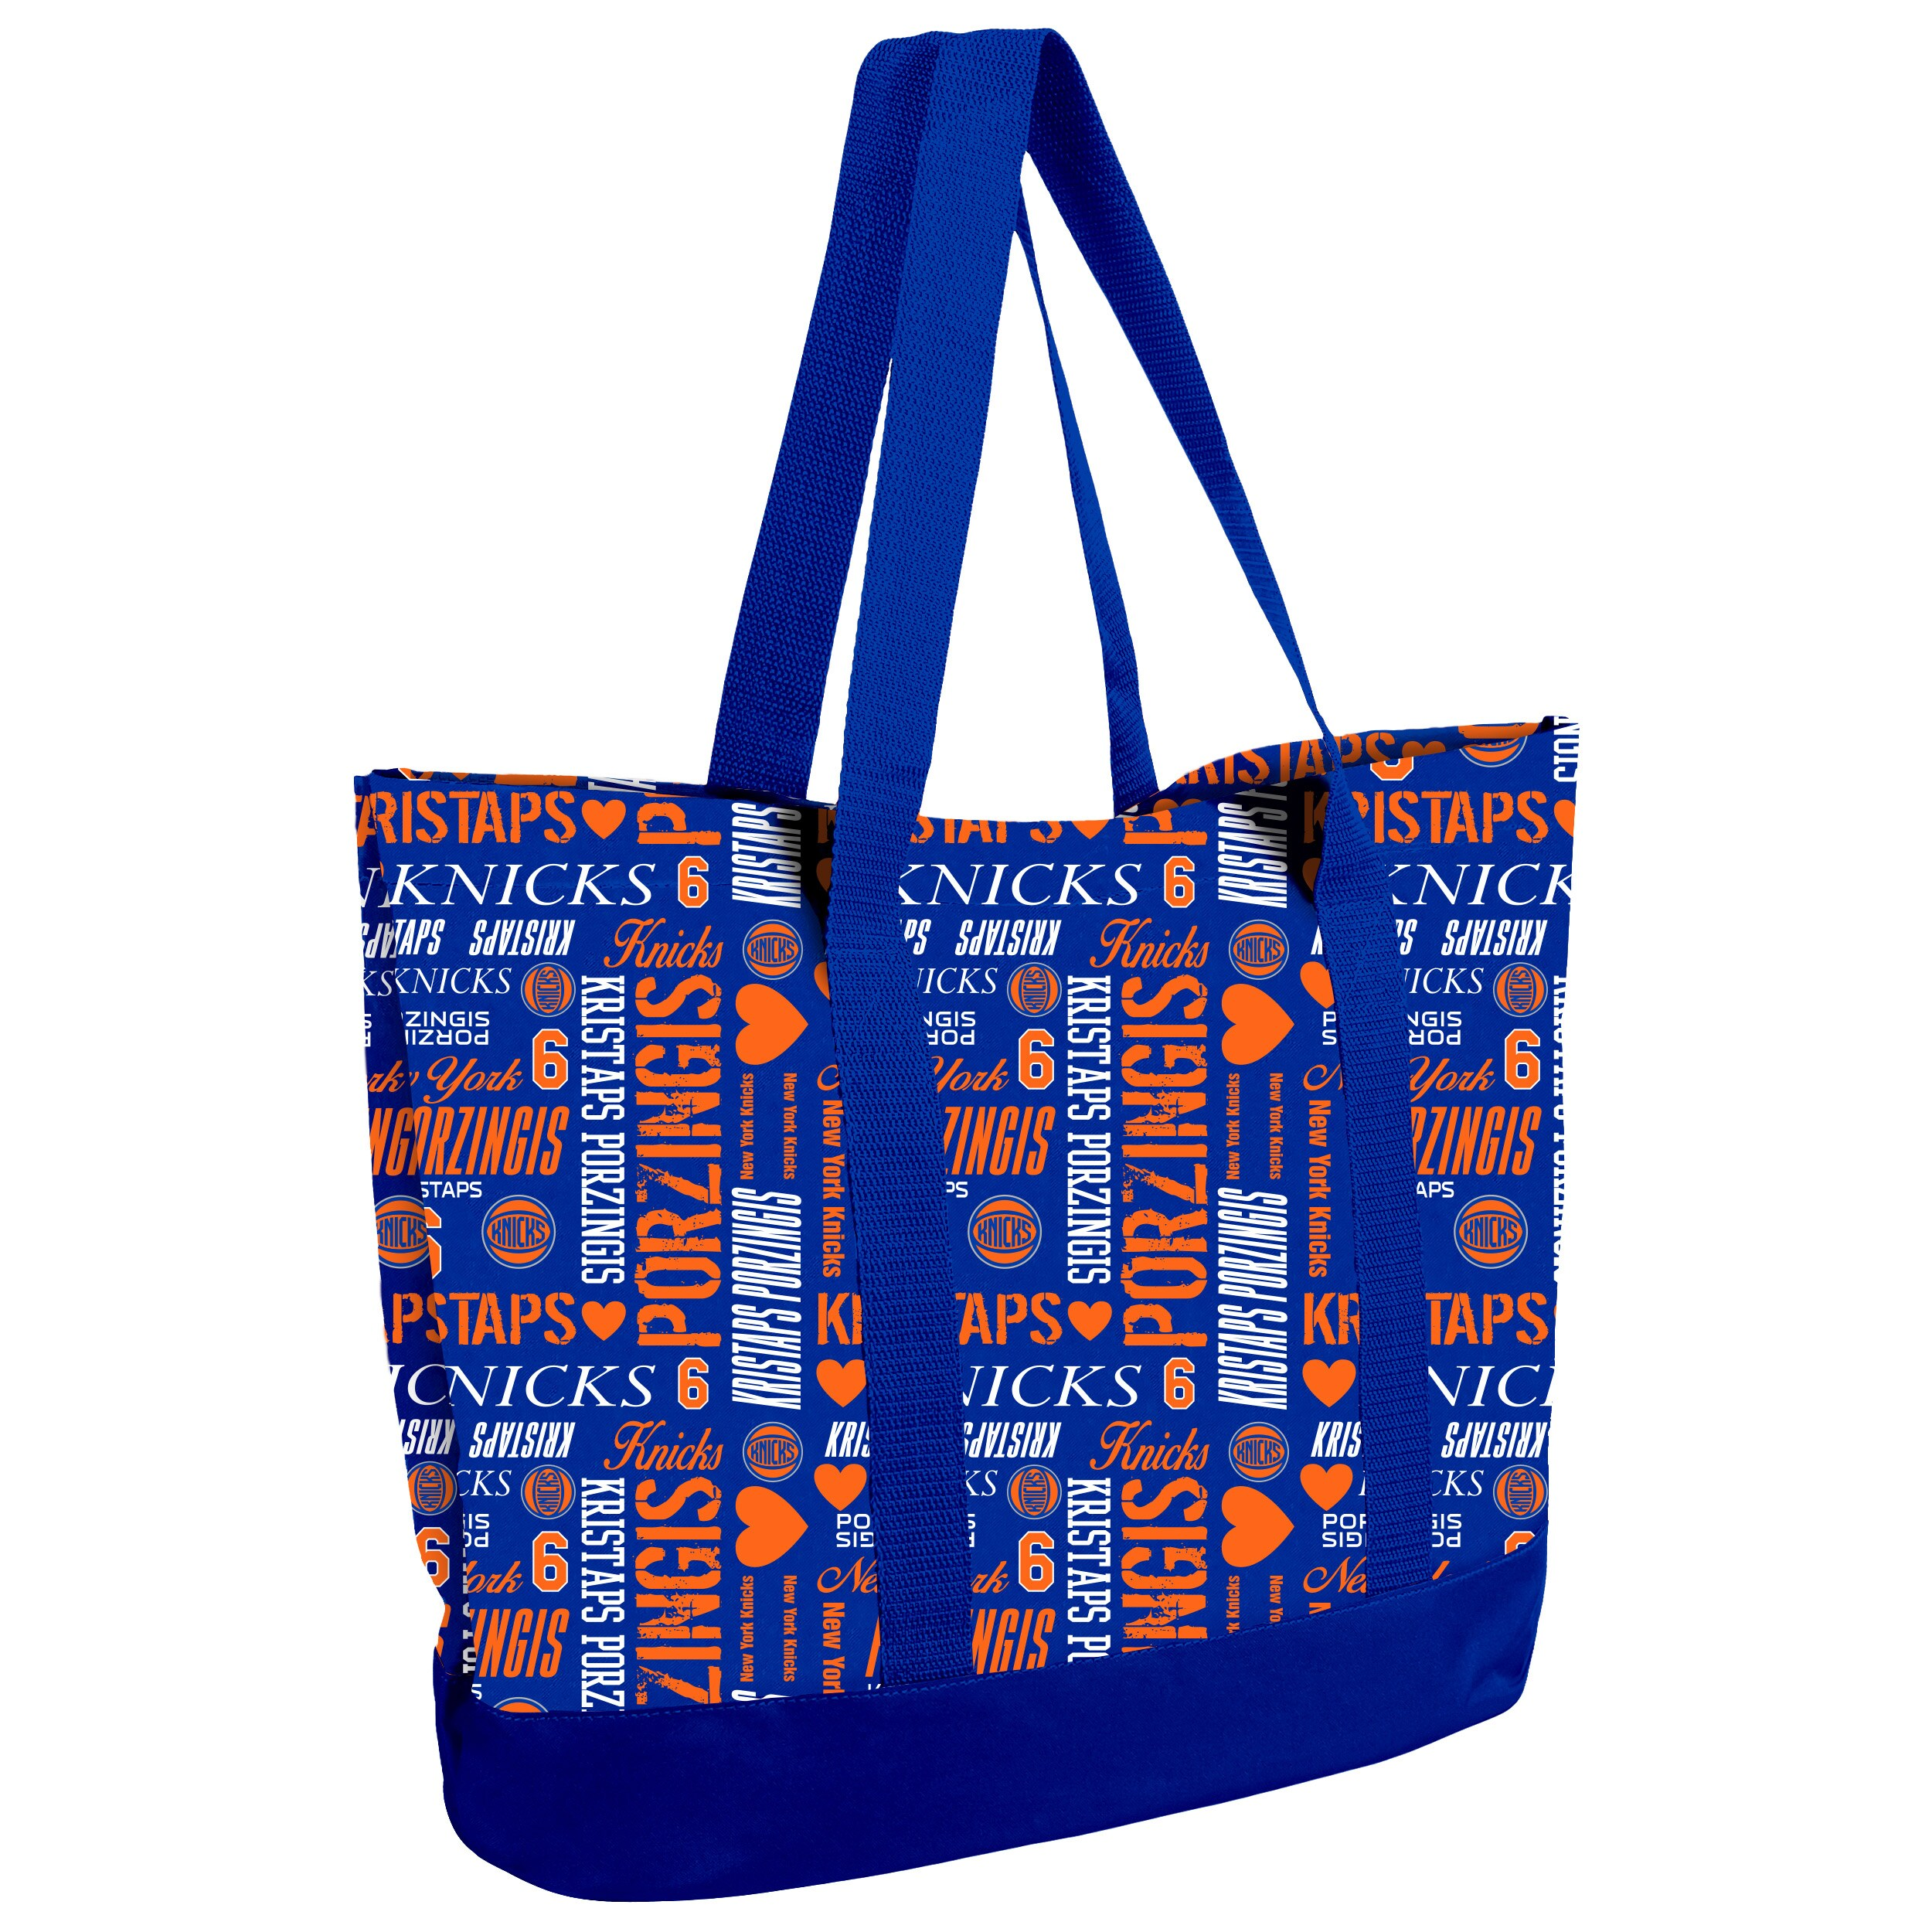 Kristaps Porzingis New York Knicks Women's Player Collage Tote Bag